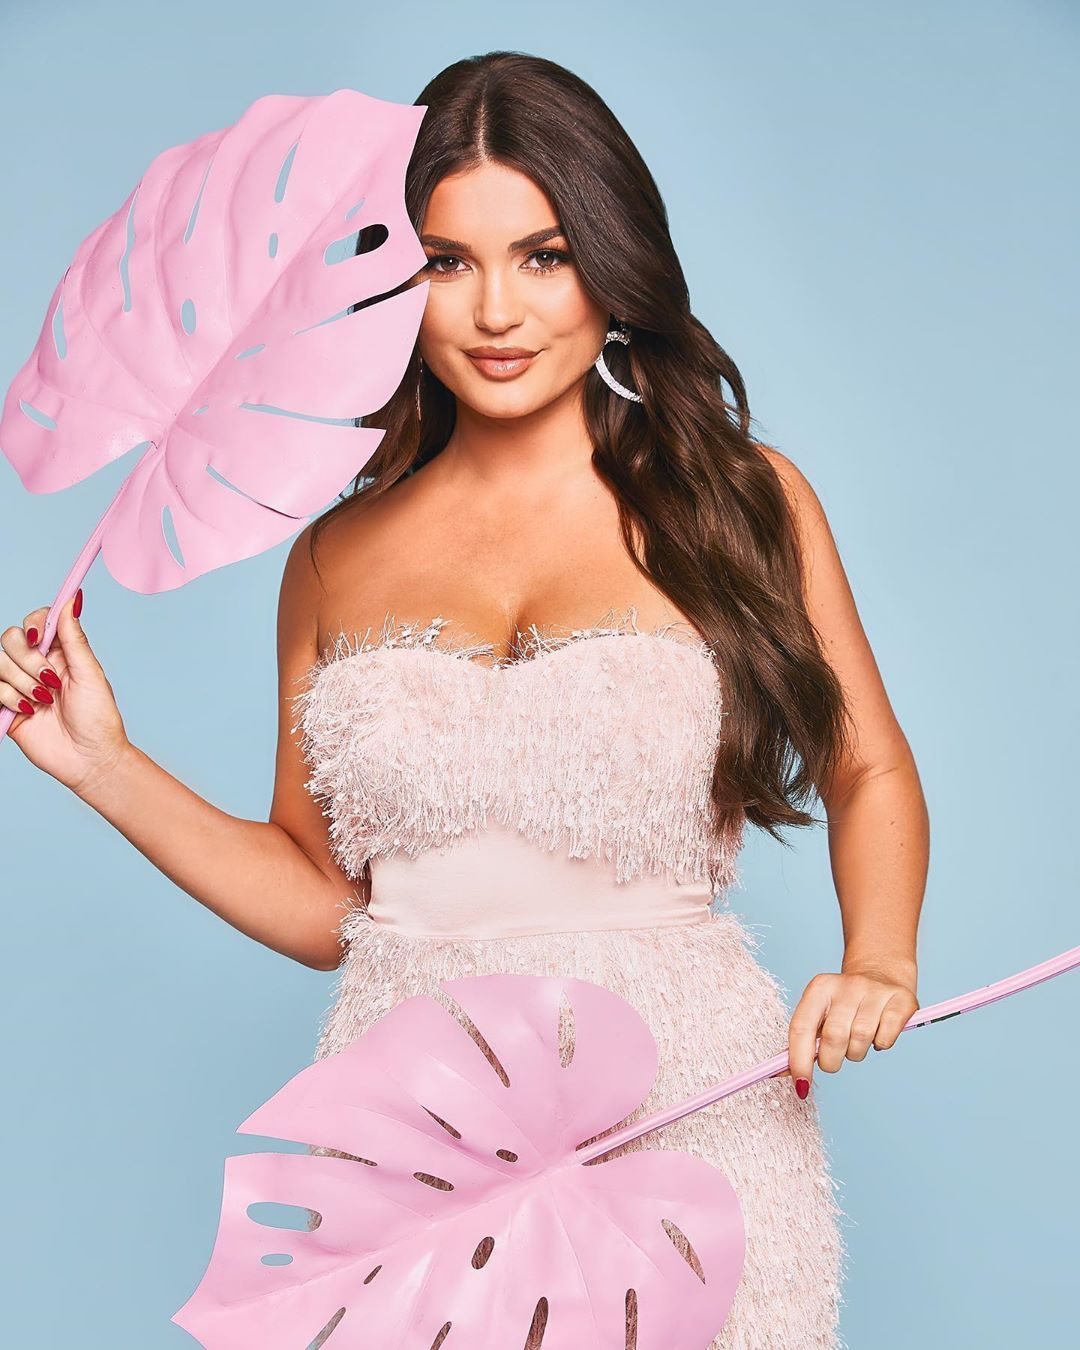 Image may contain: Love Island sponsorship deals, Love Island, India Reynolds, money, boohoo, clothing, brand, fashion, range, pay, deal, contract, shoot, Female, Dress, Evening Dress, Robe, Gown, Fashion, Person, Human, Pillow, Cushion, Clothing, Apparel